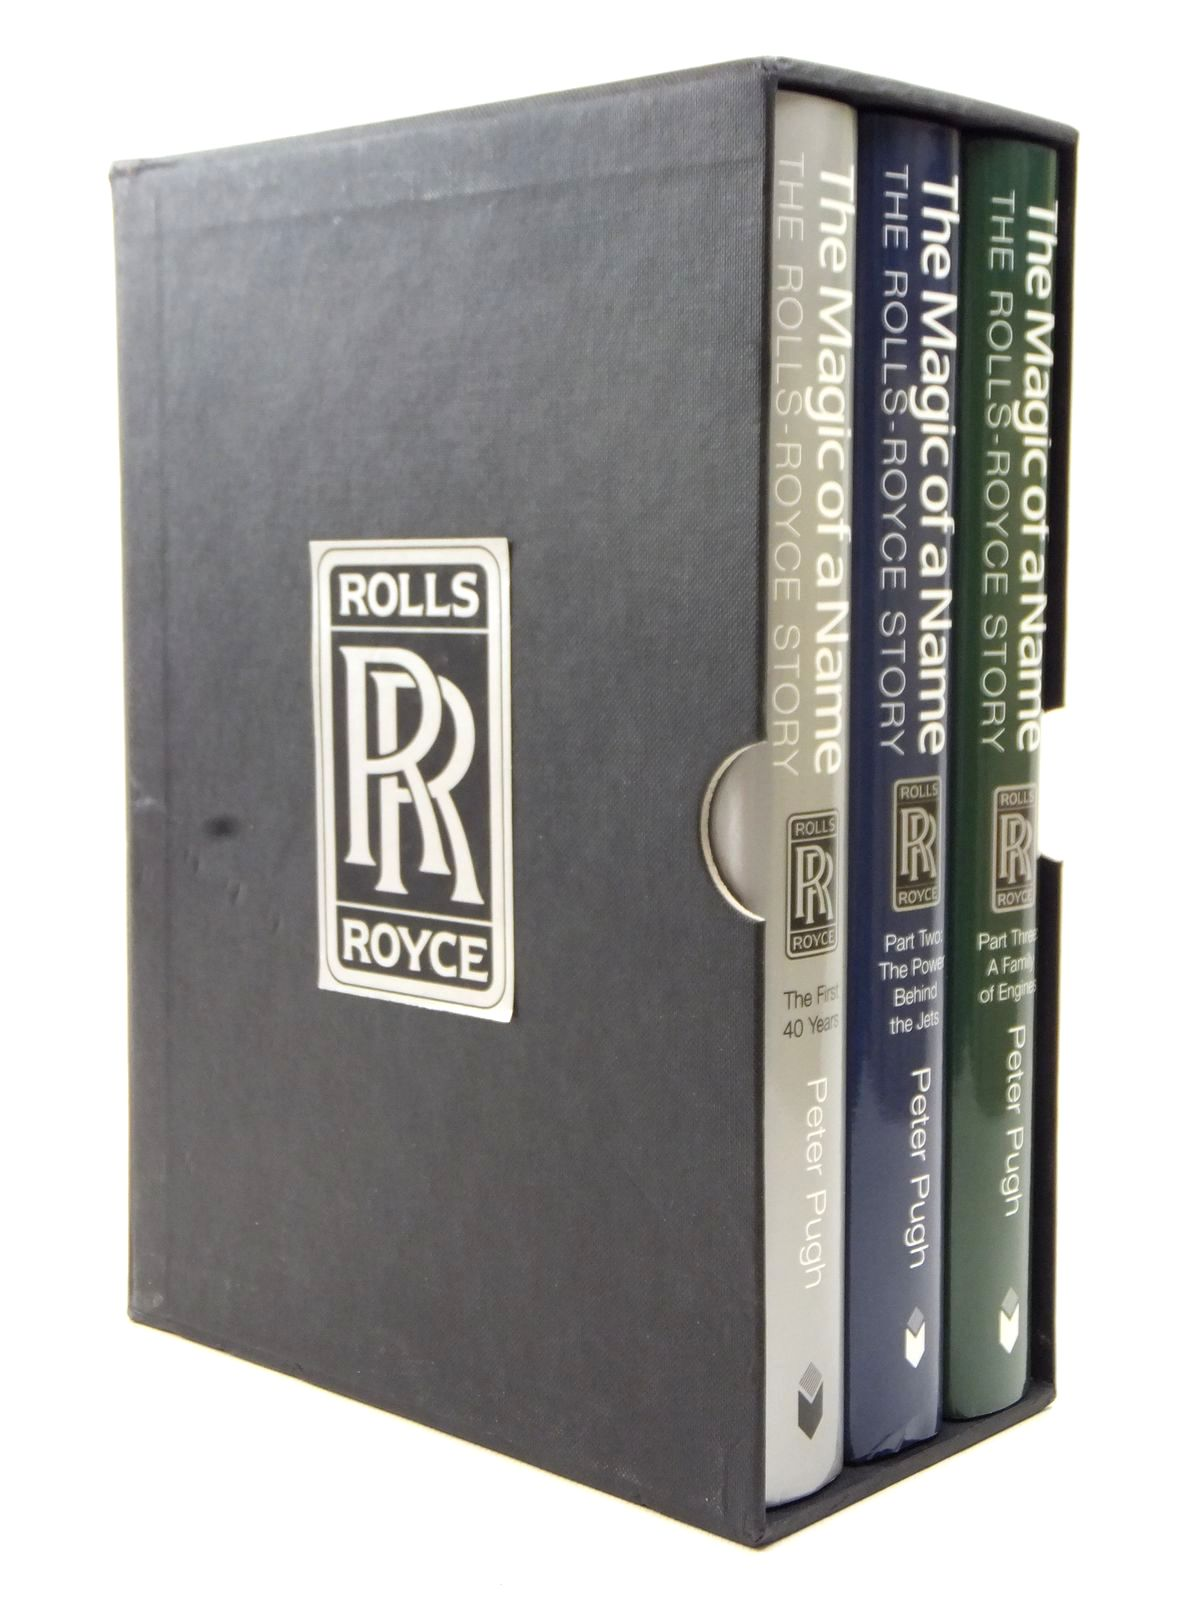 The Magic Of A Name: The Rolls-royce Story 3 Volumes